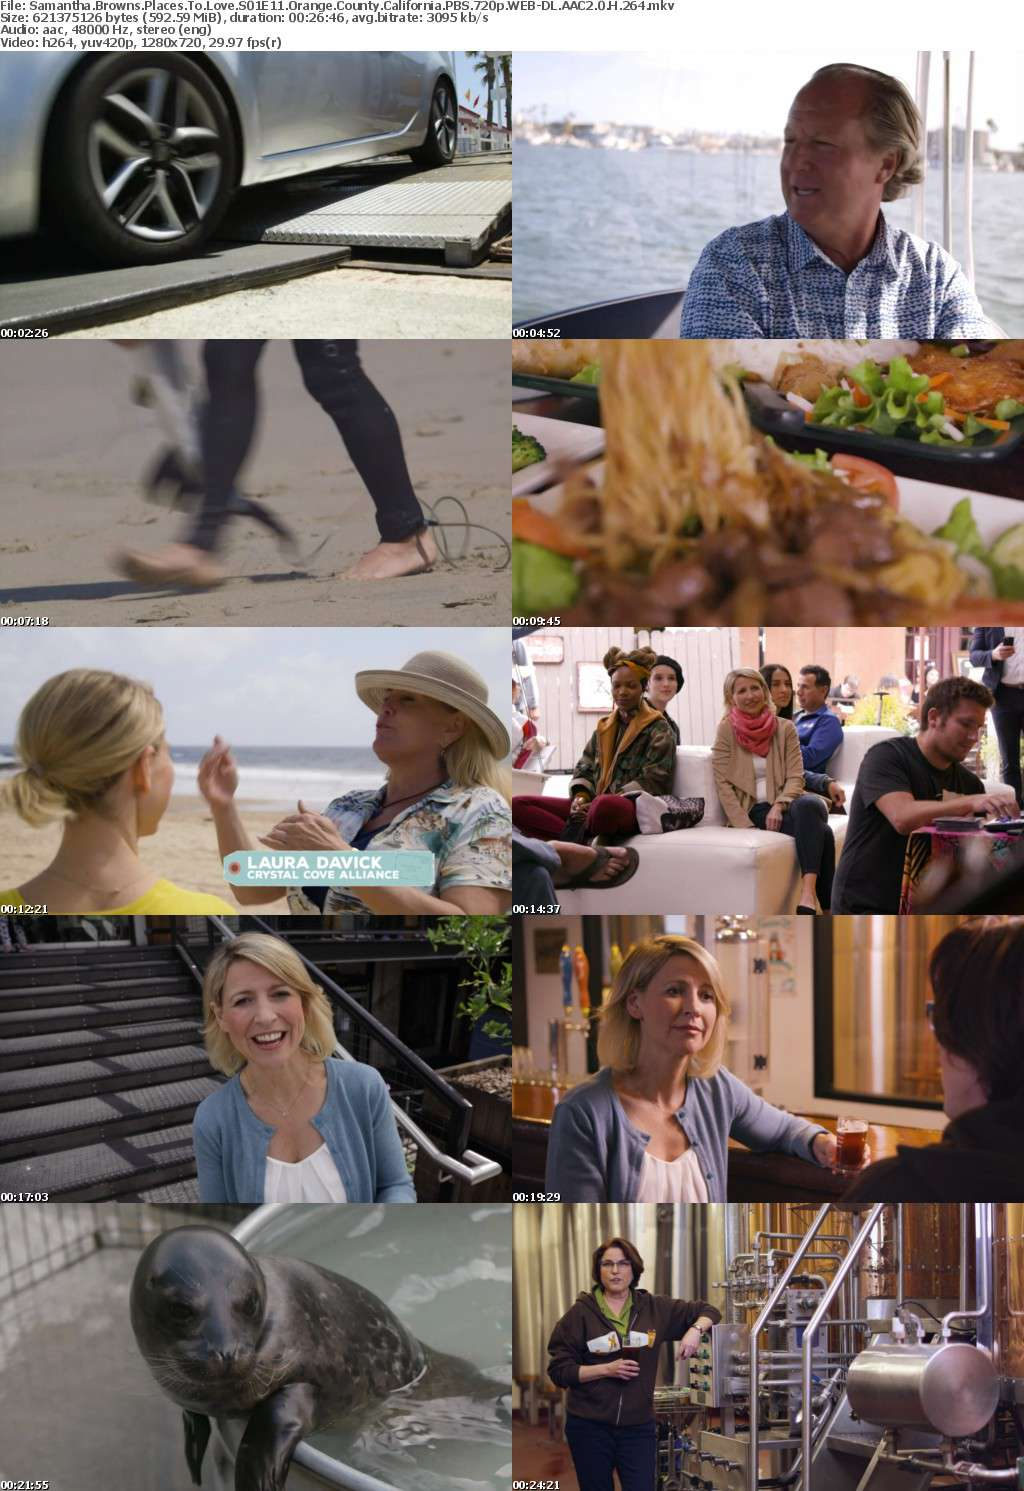 Samantha Browns Places To Love S01E11 Orange County California PBS 720p WEB-DL AAC2 0 H 264